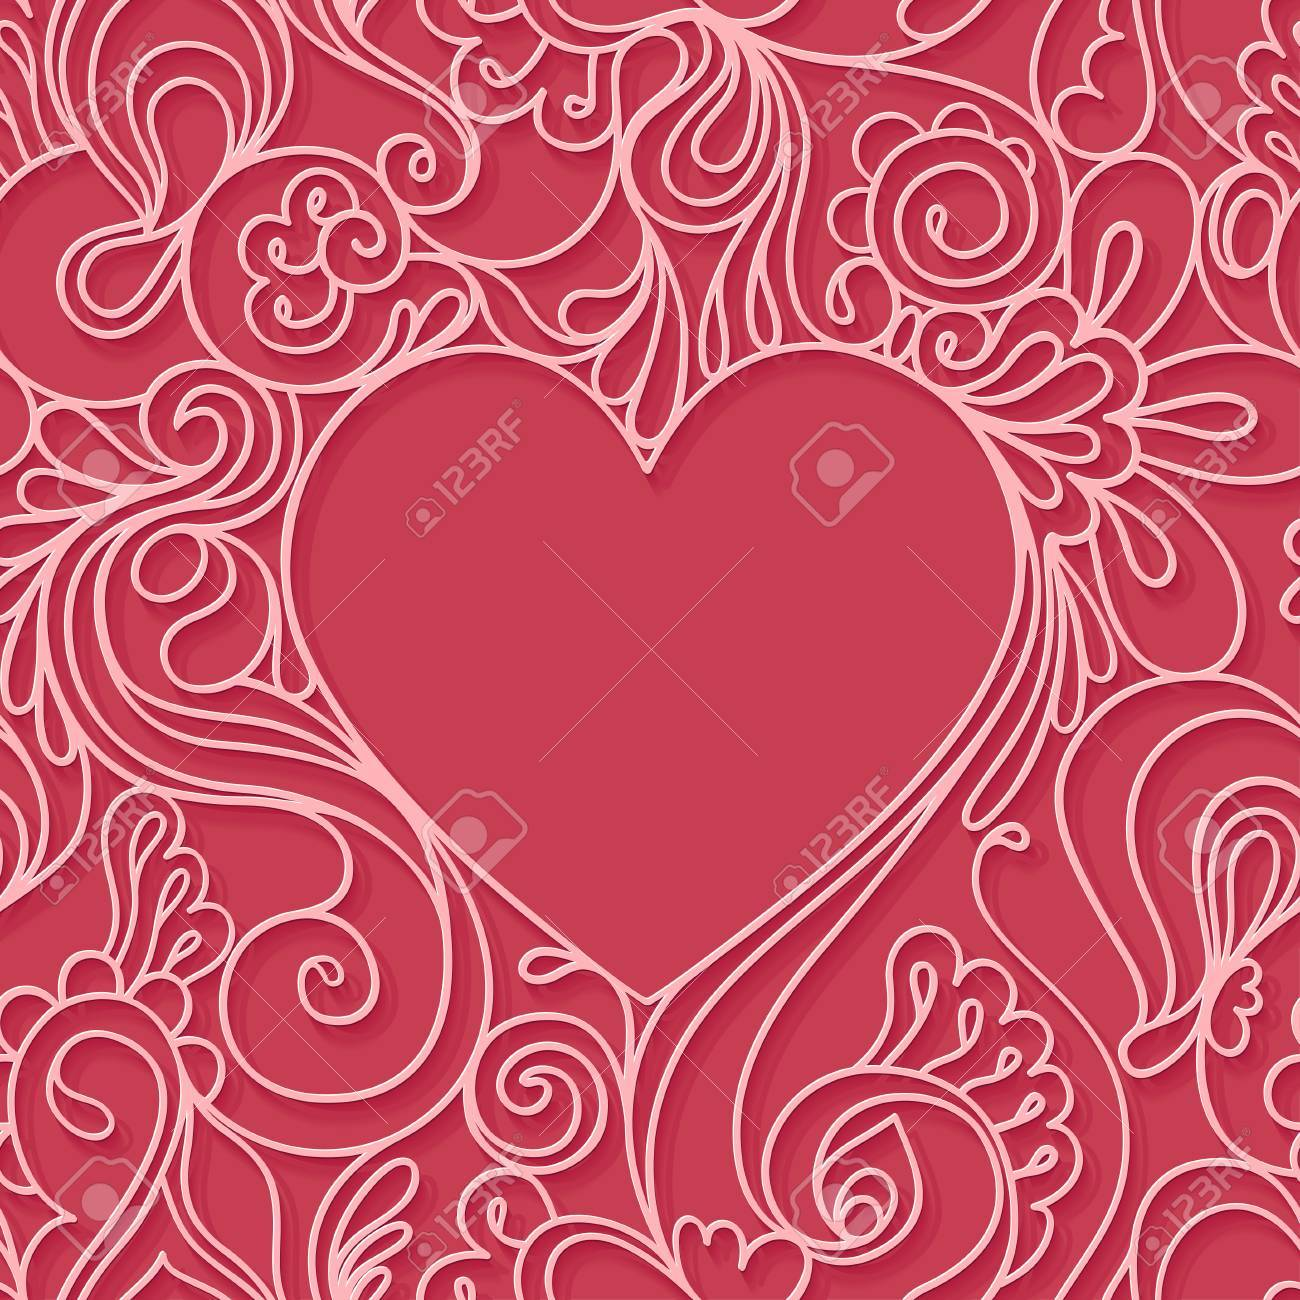 Heart frame on a red background. - 50021827